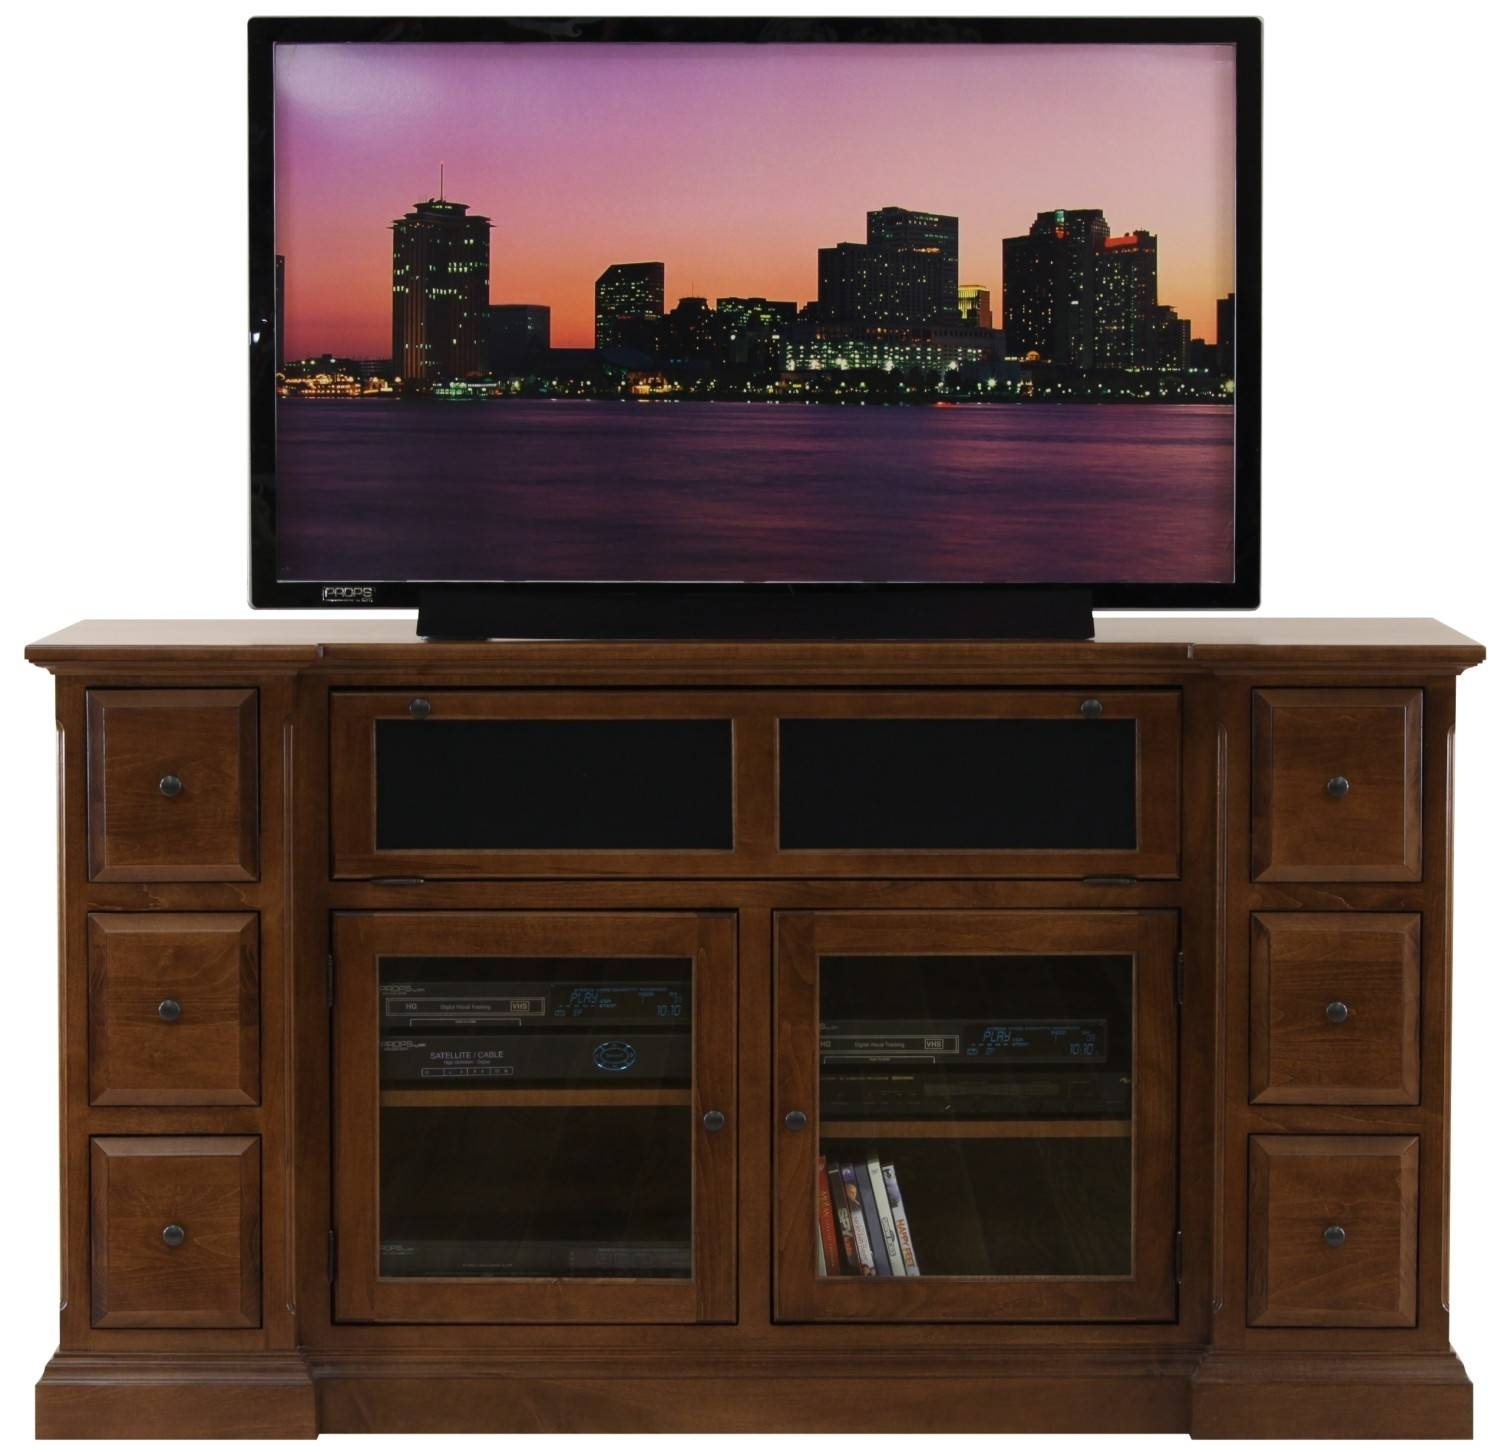 Brown Wooden Tv Stand With Storage With Glass Doors Combined With for Wooden Tv Cabinets With Glass Doors (Image 5 of 15)